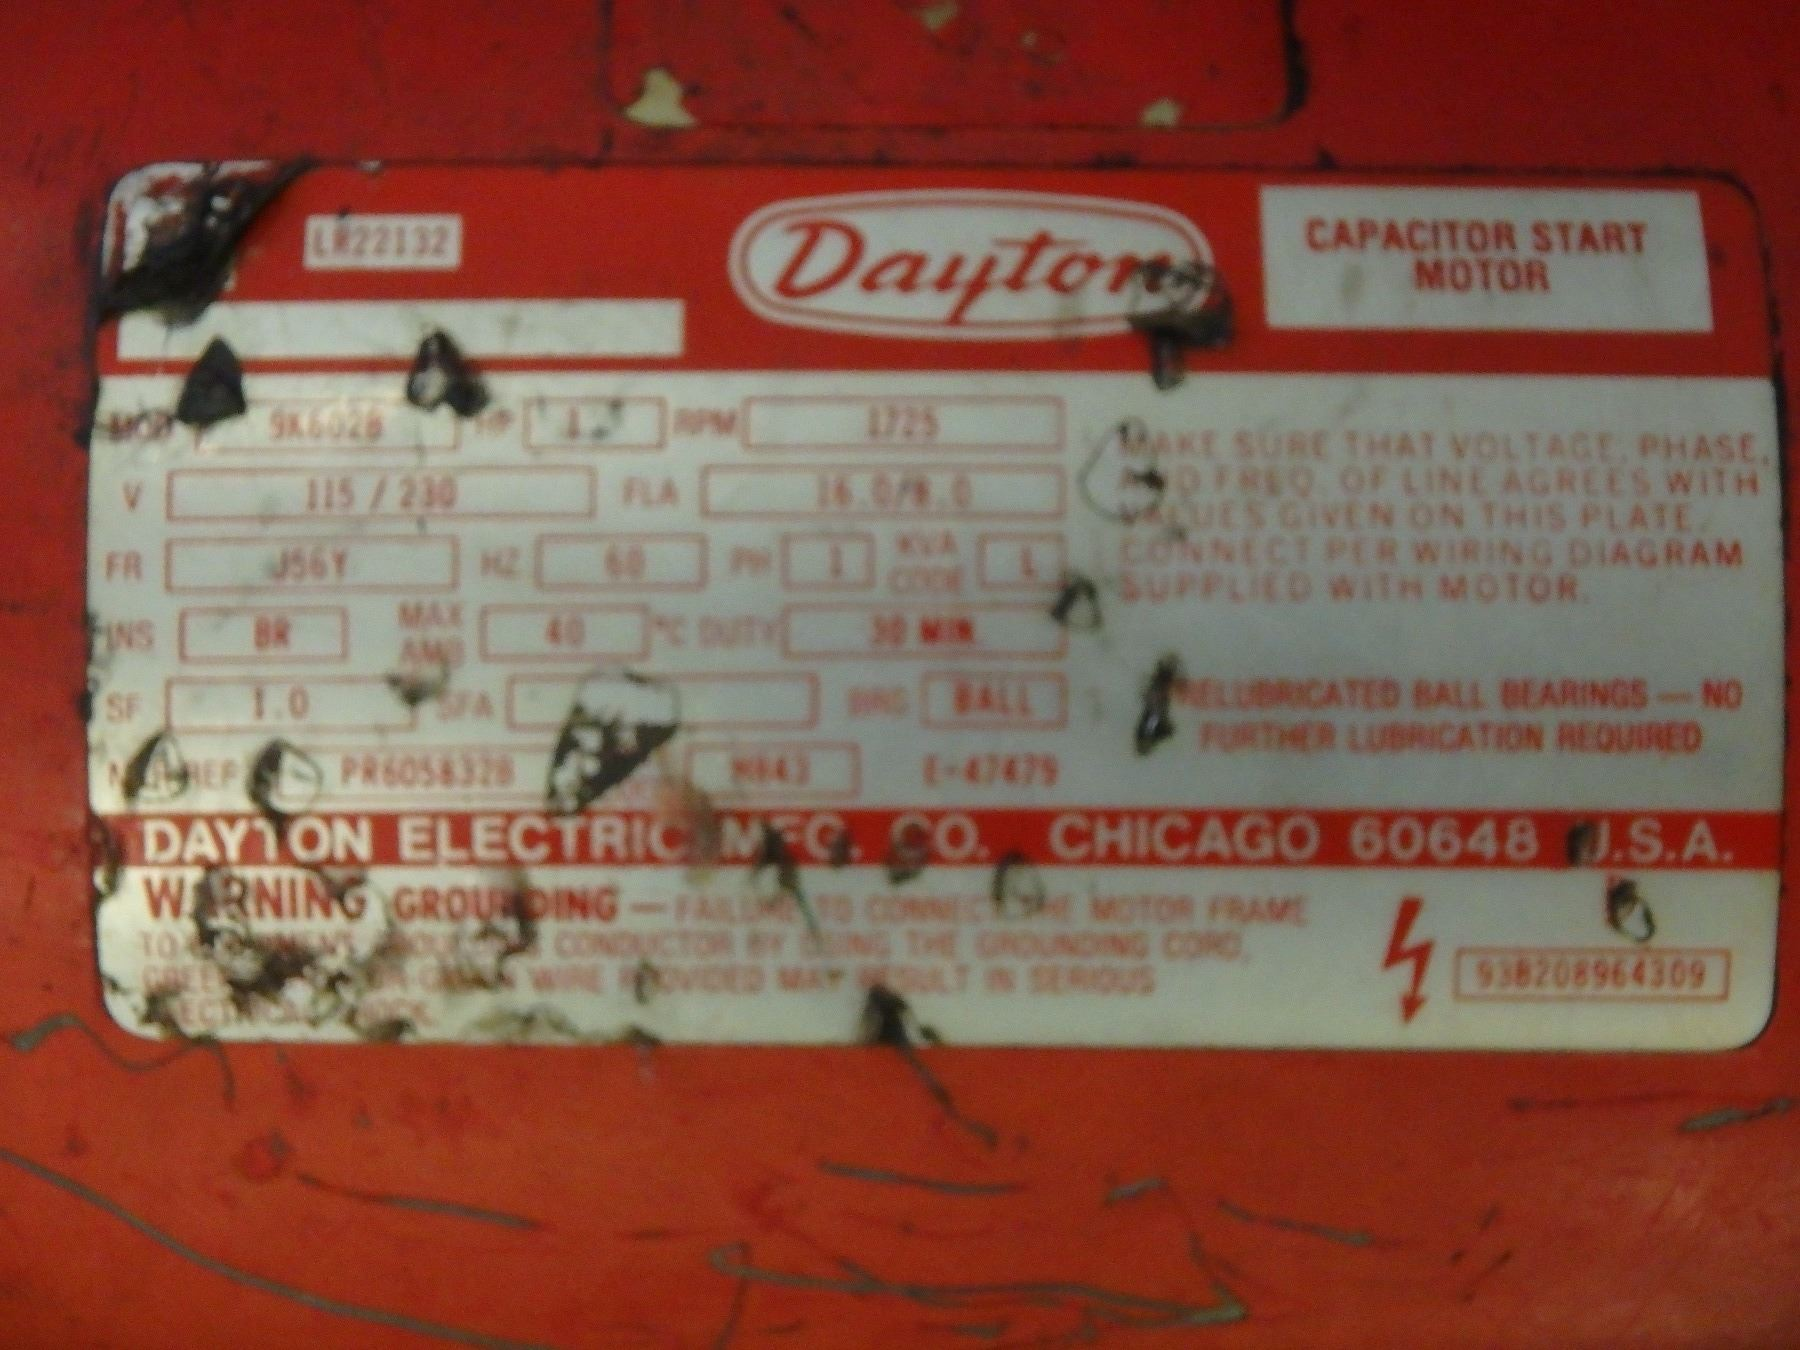 Dayton 2 Ton Electric Chain Hoist M N Not Readable With Hp Motor Wiring Diagram Besides Image 4